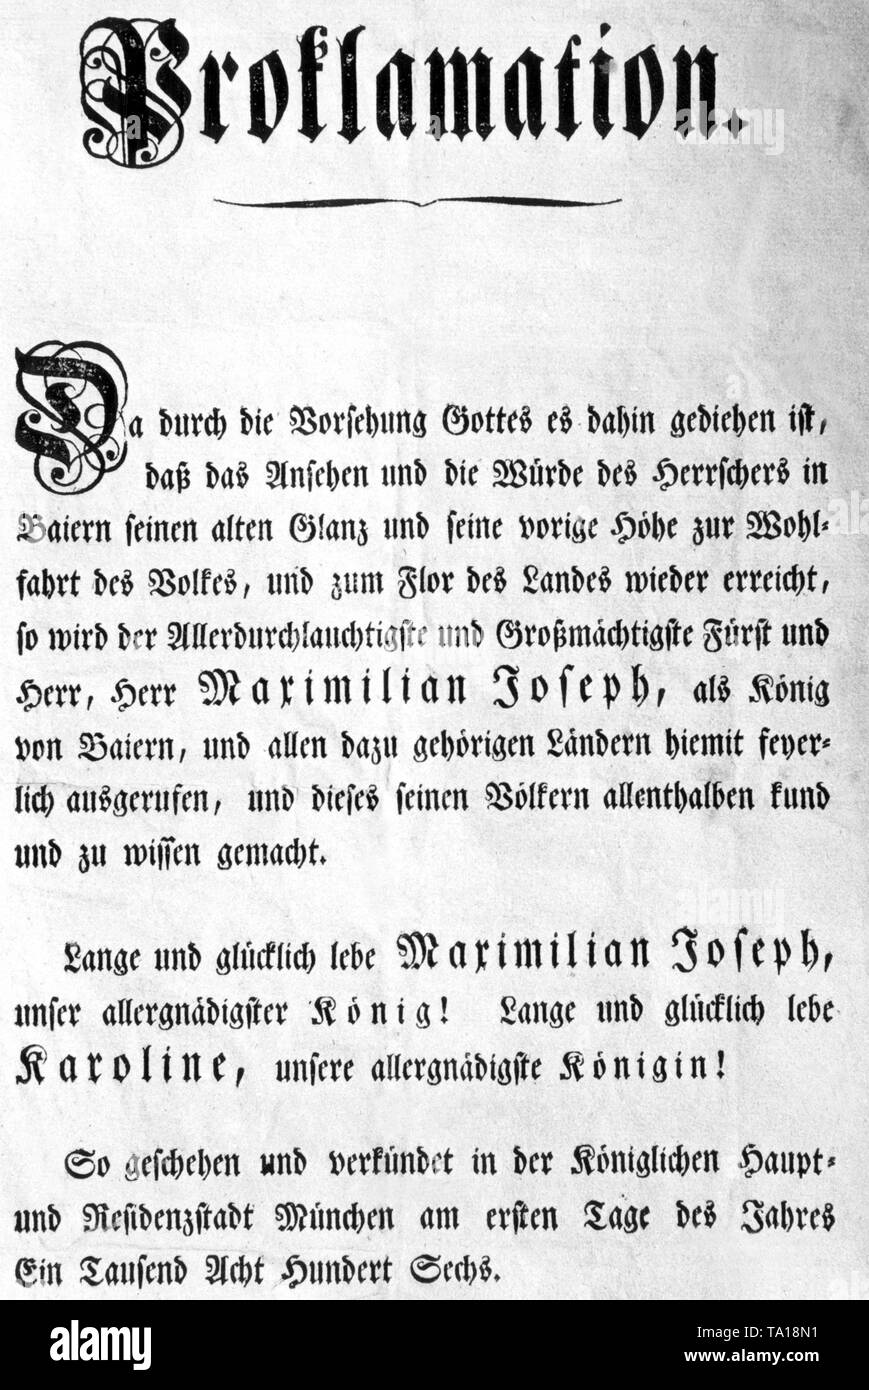 This photograph shows the proclamation announcing the establishment of the Kingdom of Bavaria and the appointment of the former Elector Maximilian Joseph as King of Bavaria. Together with 16 southern German princes, Bavaria resigned from the Reich and founded the Rhine Confederation in Paris under Napoleon's protectorate, which was followed by 20 other German territories until 1811. The political center of this group directed against Vienna is Munich. Stock Photo